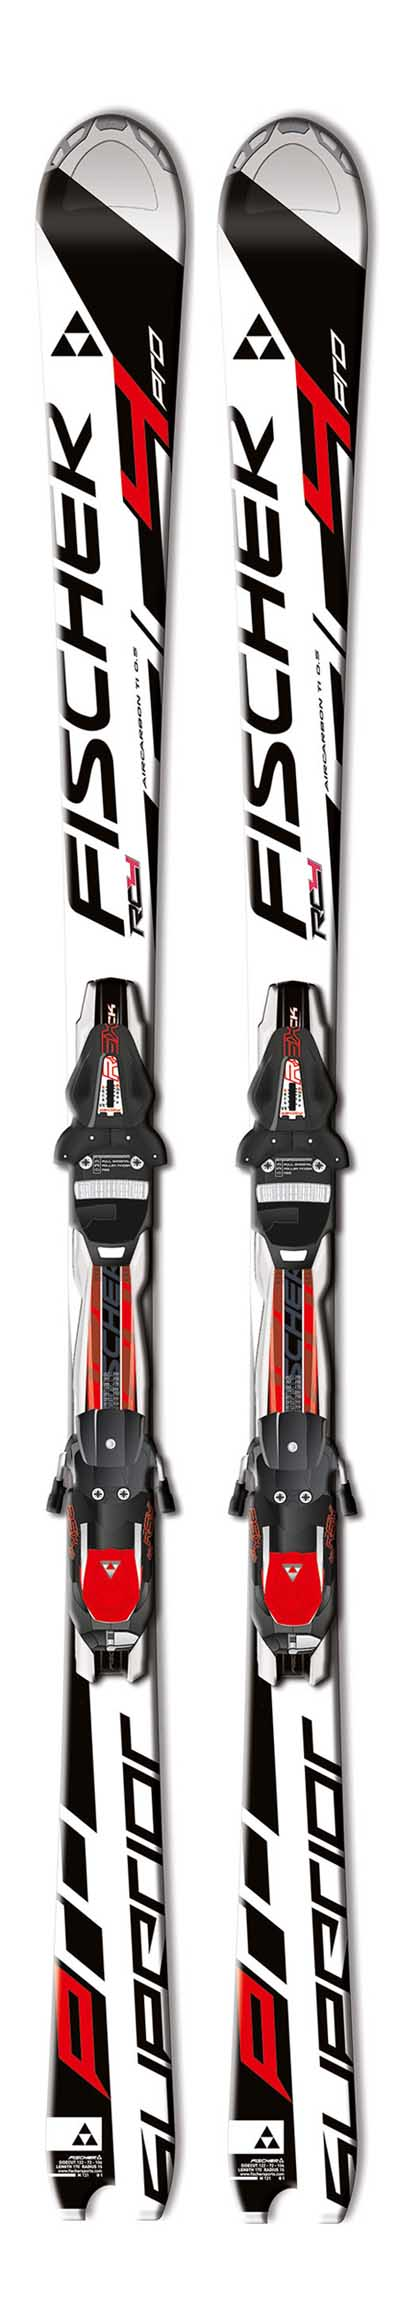 Fischer 13 - 14 RC4 Superior Pro Skis w/RSX 12 Bindings NEW !!  160cm